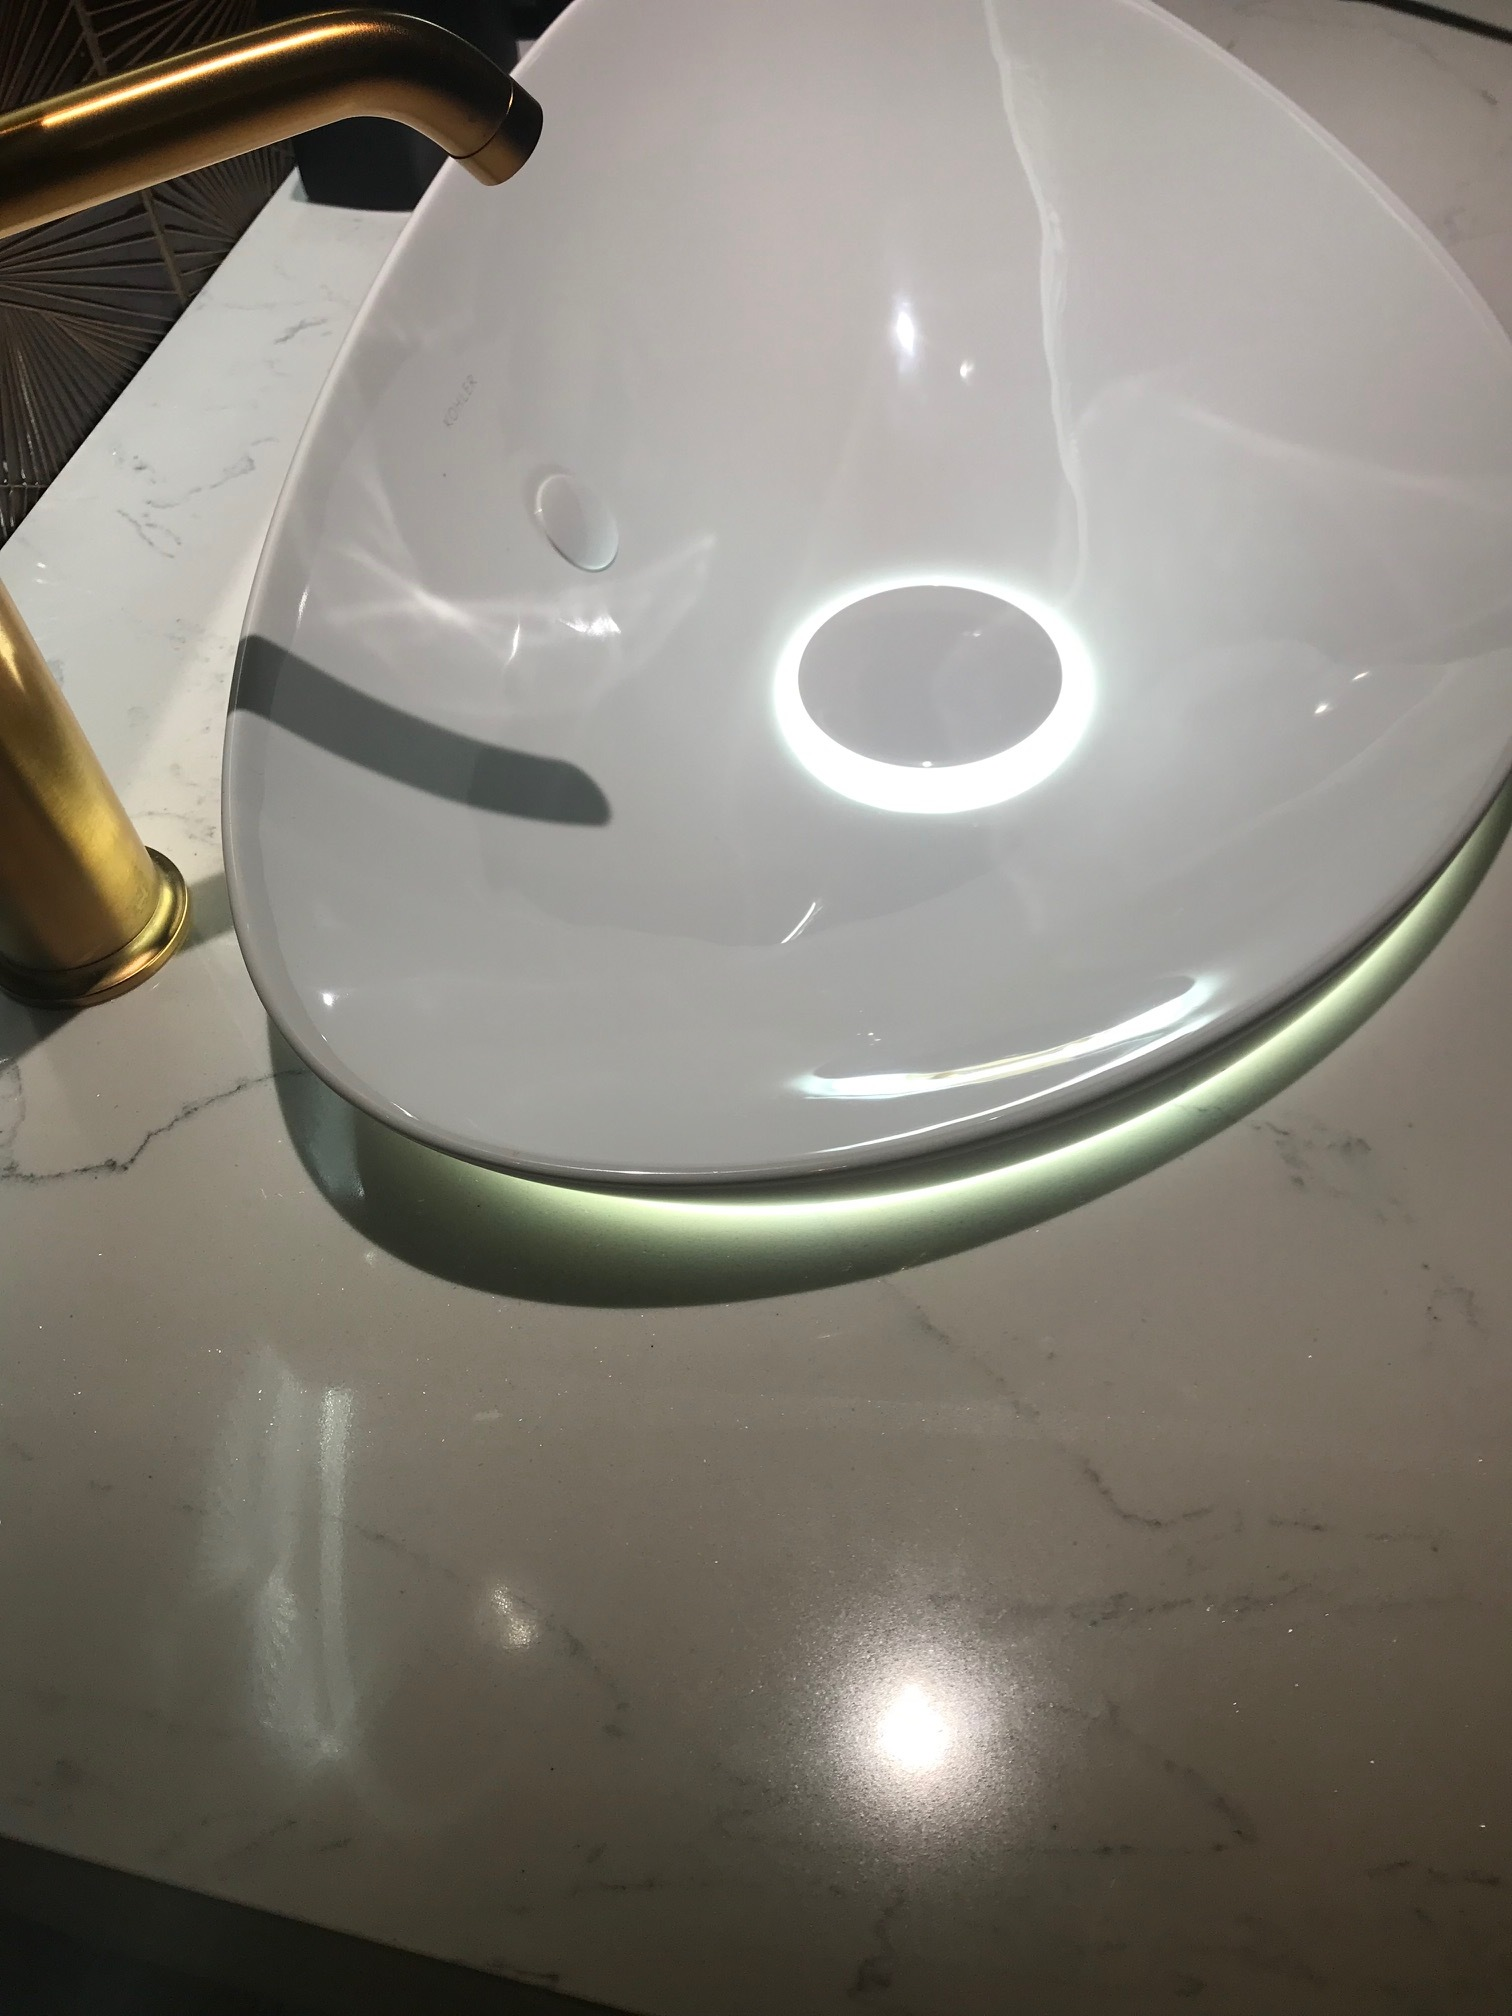 2019-02 Kohler Veil Sink - Lighted Drain.jpg